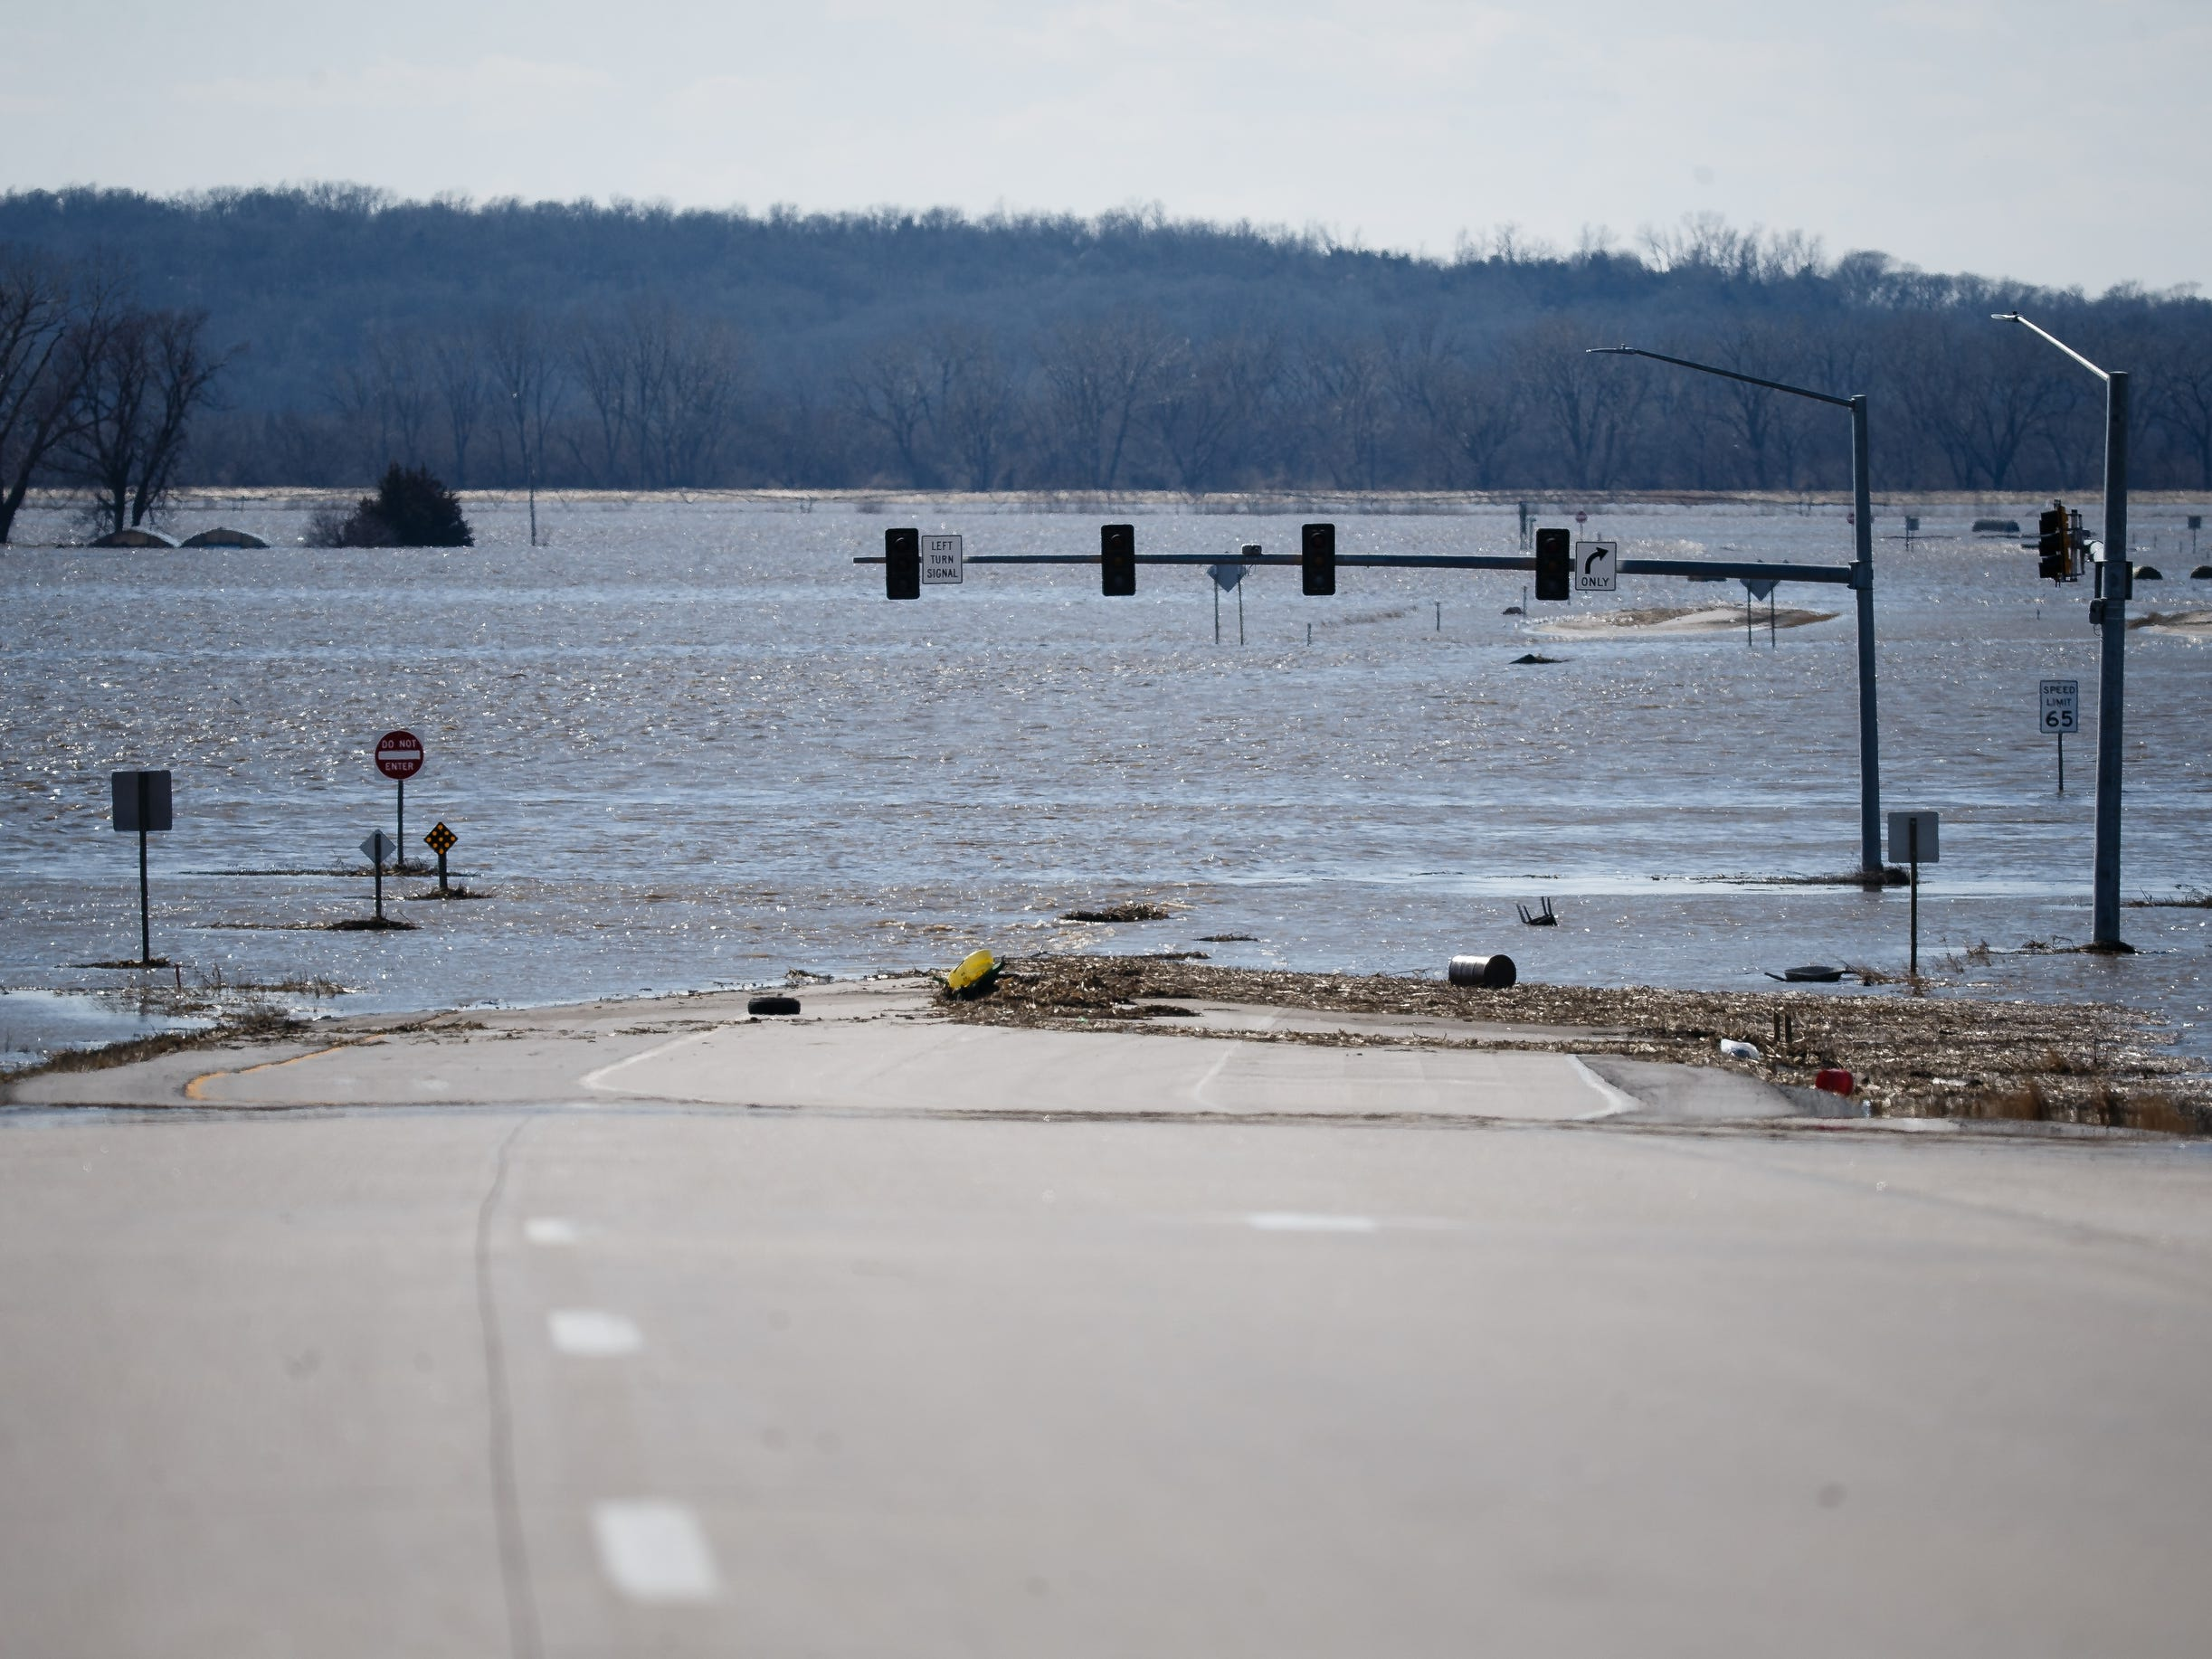 Highway 34 disappears into flood waters just west of I-29 on Wednesday, March 20, 2019, in Mills County. Flood water have shut down parts of Interstate 29 from Council Bluffs to the Missouri border and Highway 35 to the Nebrasak border